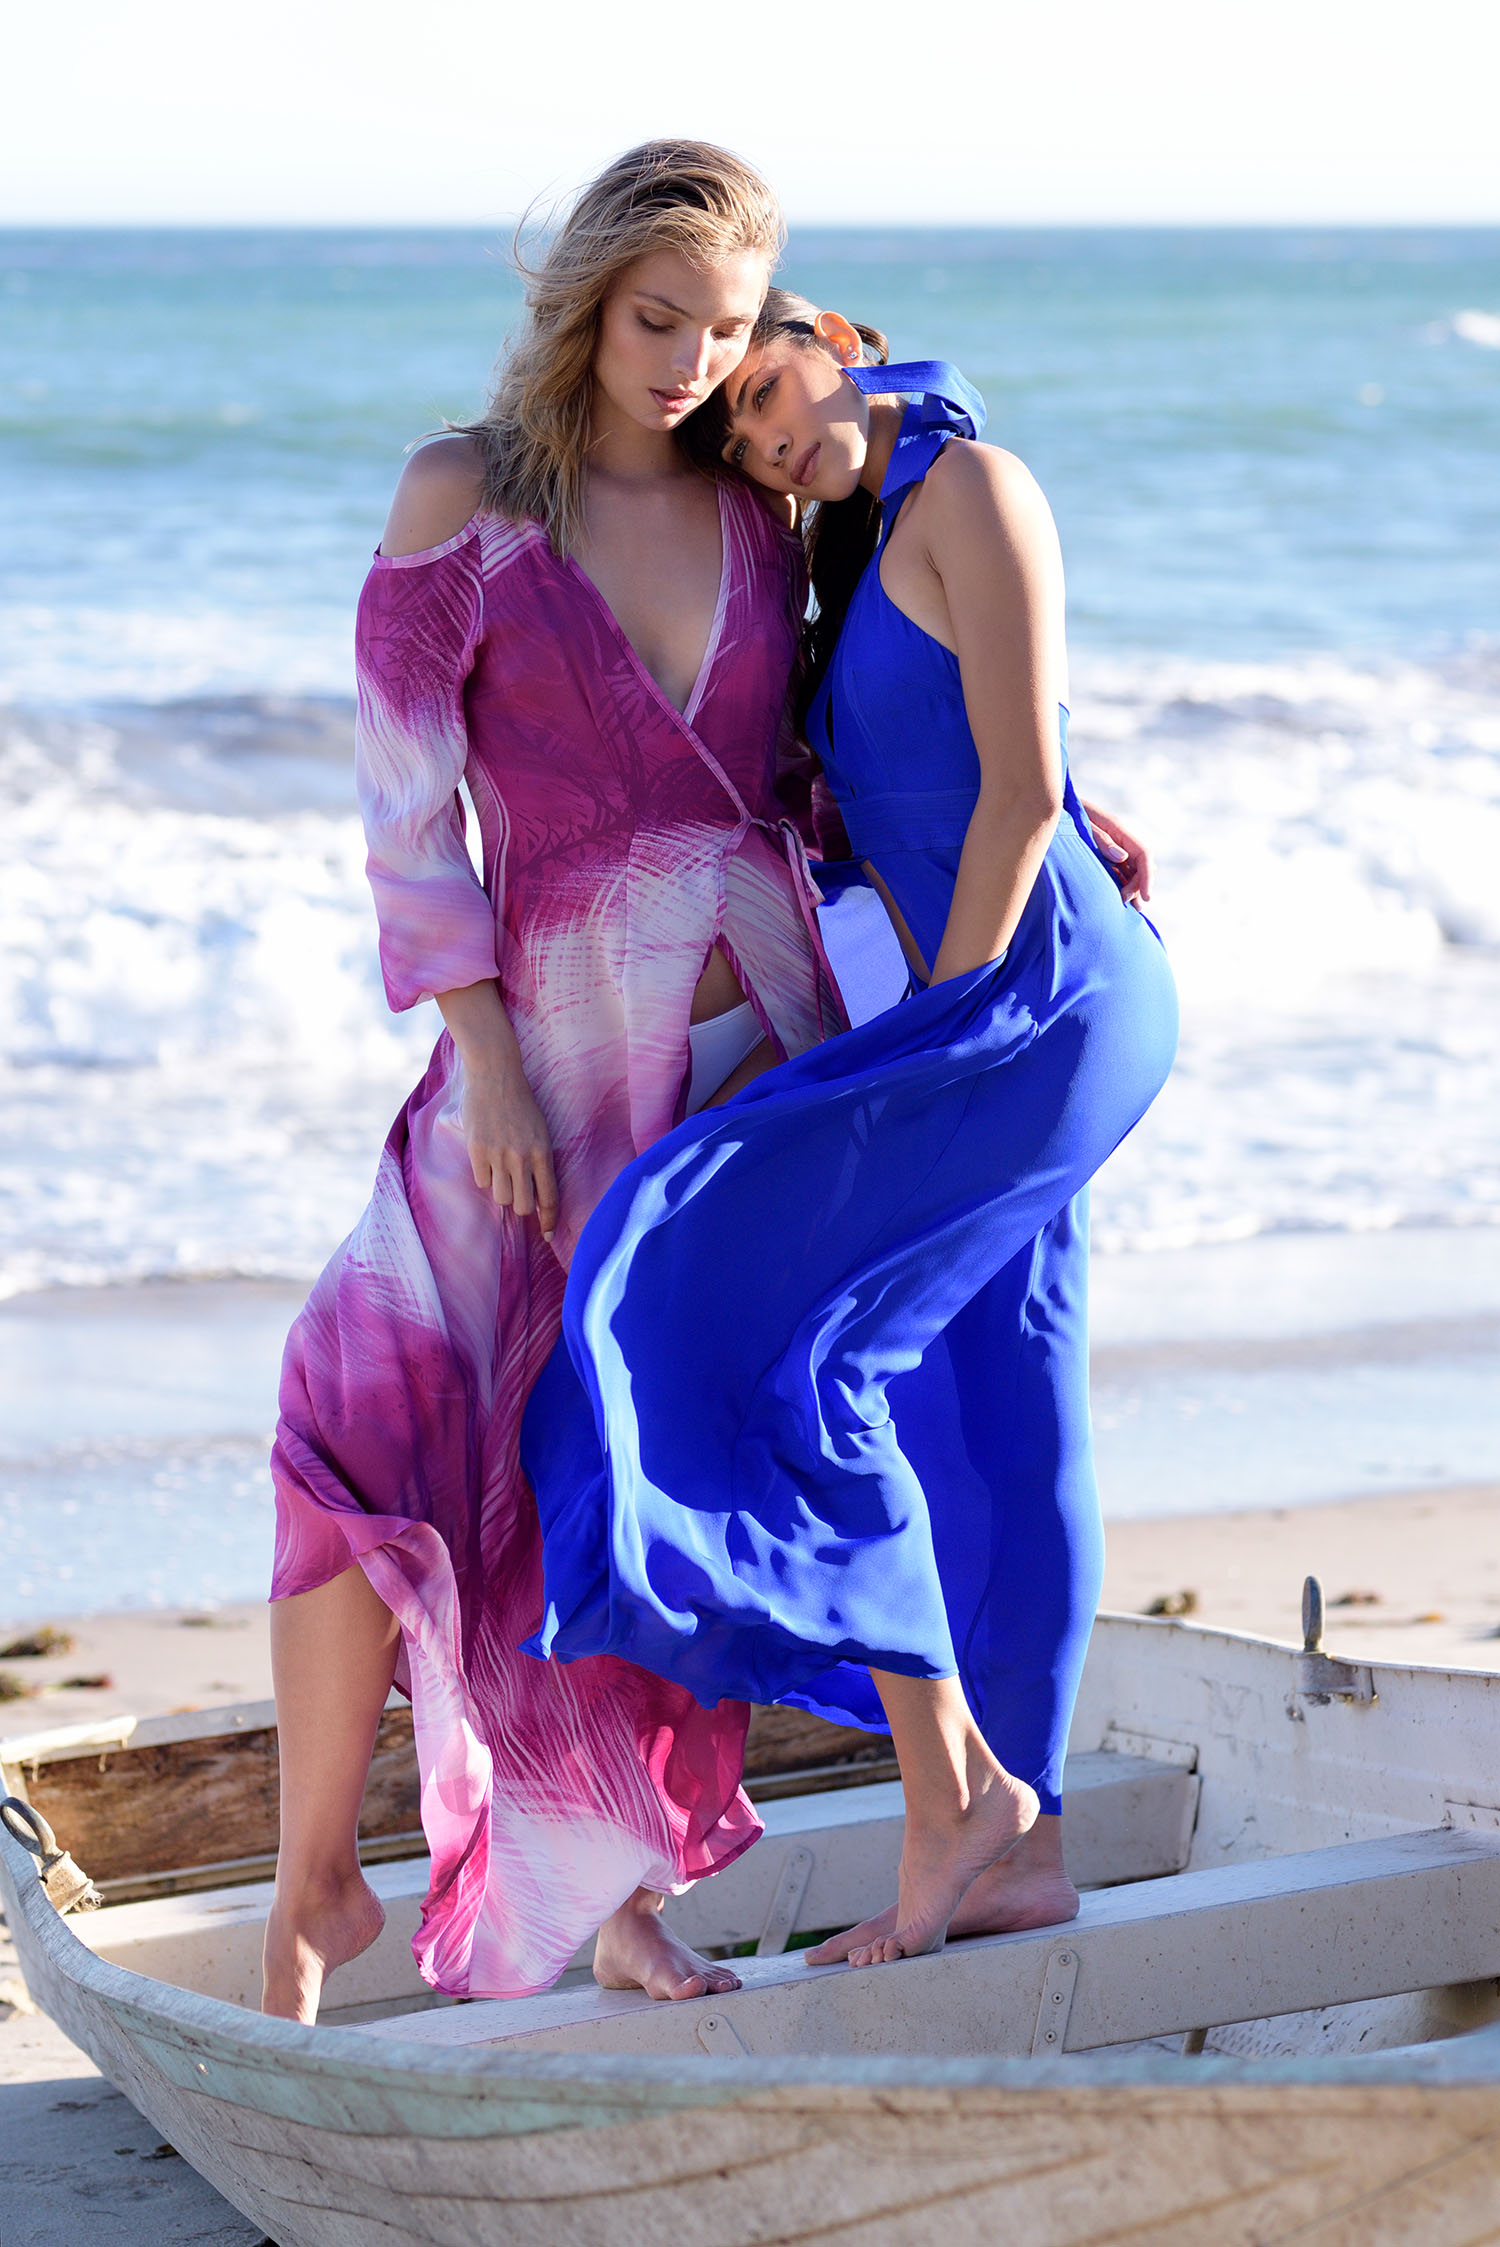 Carola Remer and Liz Mittra are stranded on a boat washed ashore in elegant gowns blowing in the ocean breeze for resort wear campaign